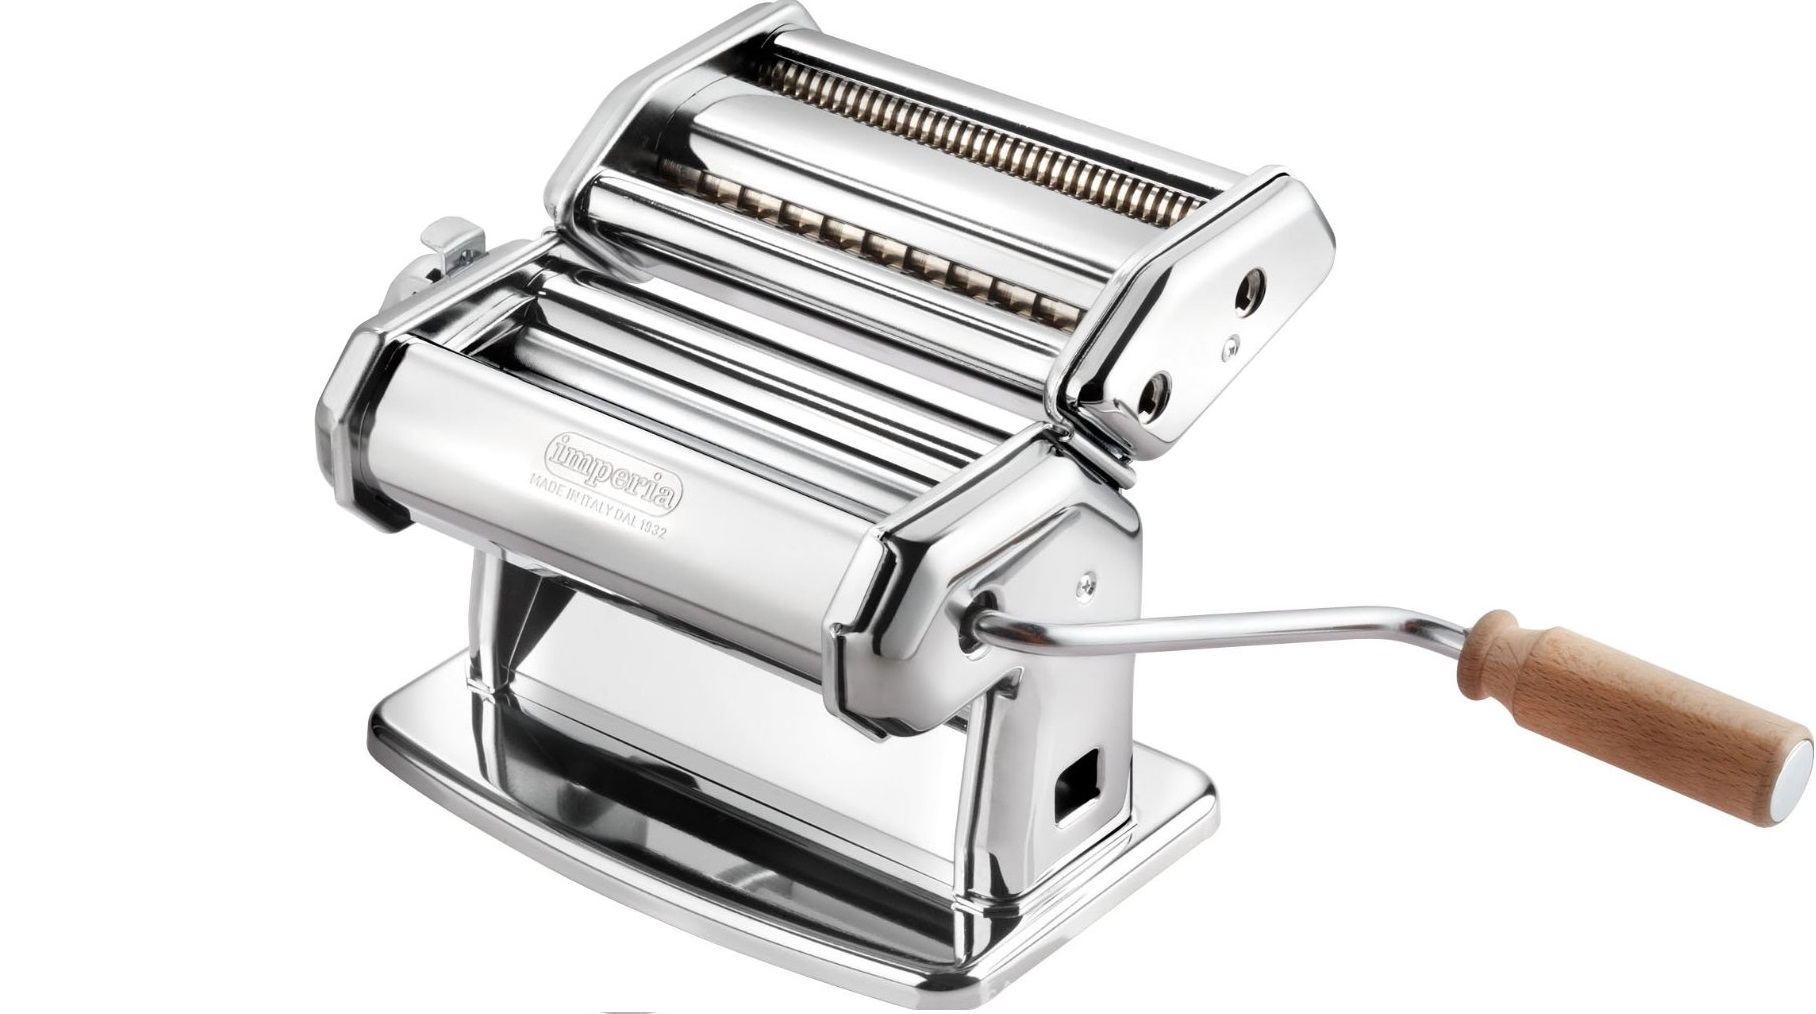 Amazon Cucinapro Cucinapro Imperia Pasta Machine Review Pasta Maker Hq